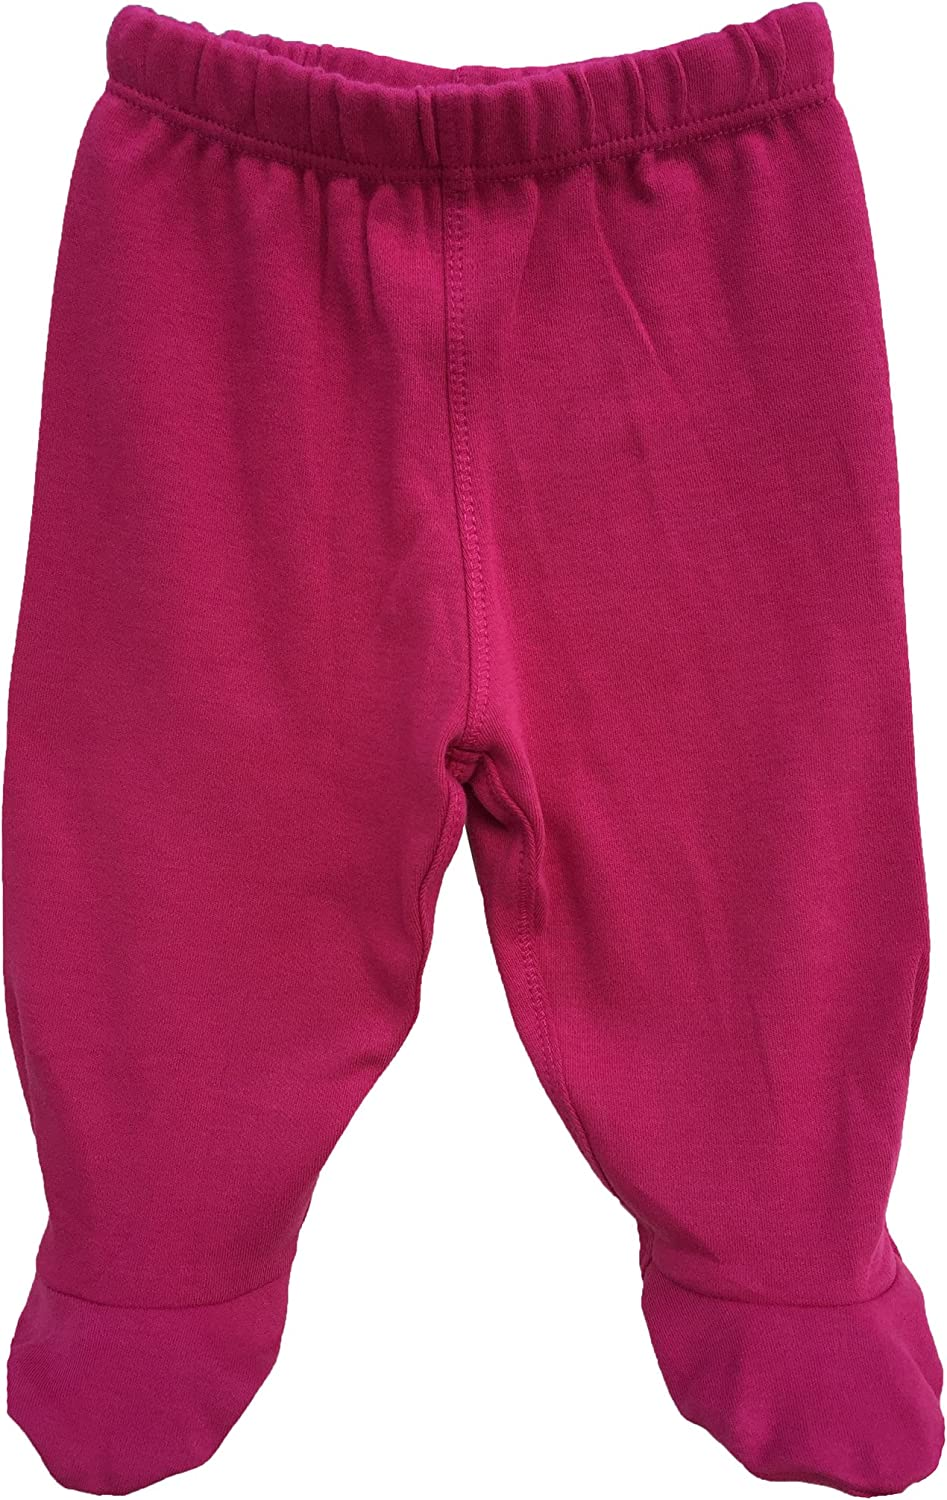 Many Colors Organic Cotton Baby Footed Pants